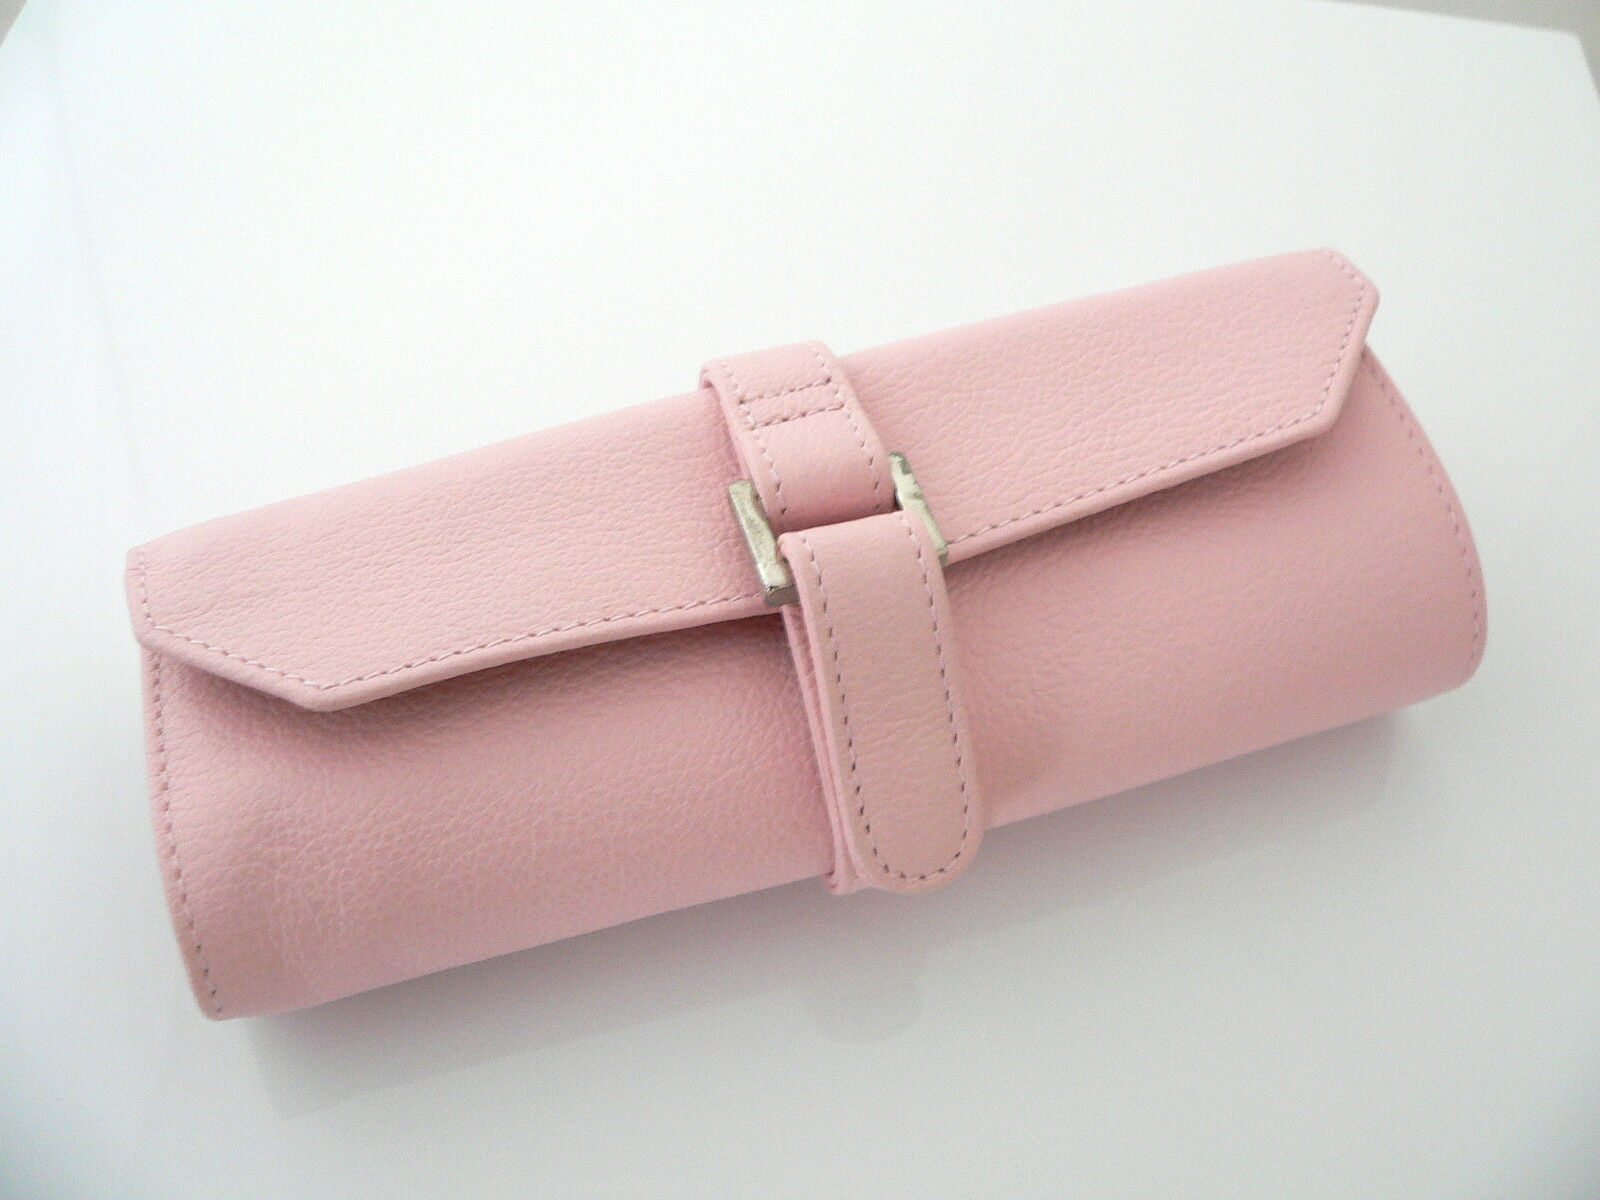 Tiffany & Co Pink Leather Jewelry Travel Purse Handbag Bag Roll Case Gift